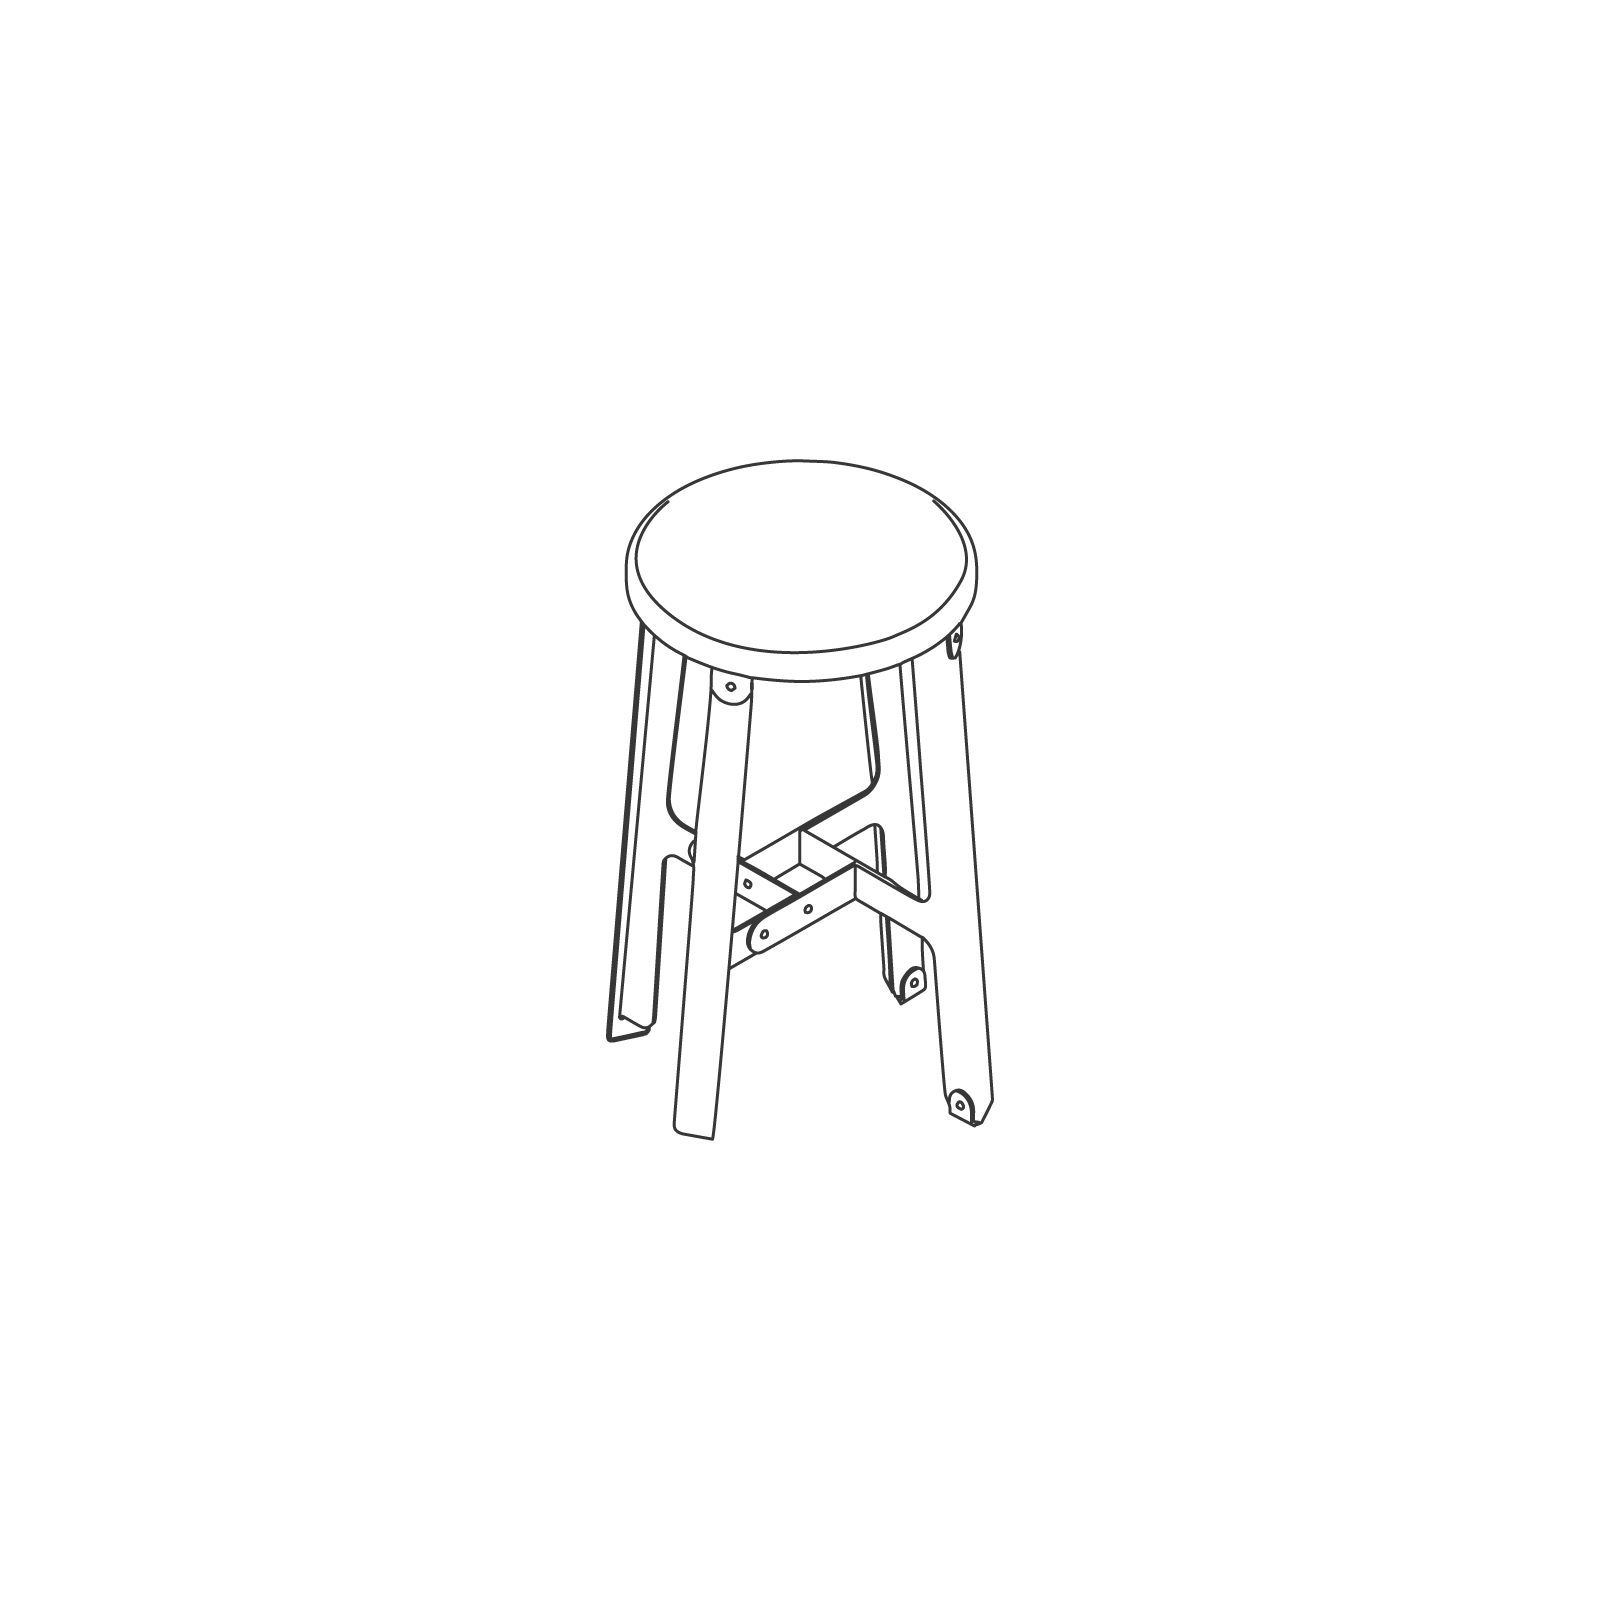 A line drawing of Construct Stool–Low.